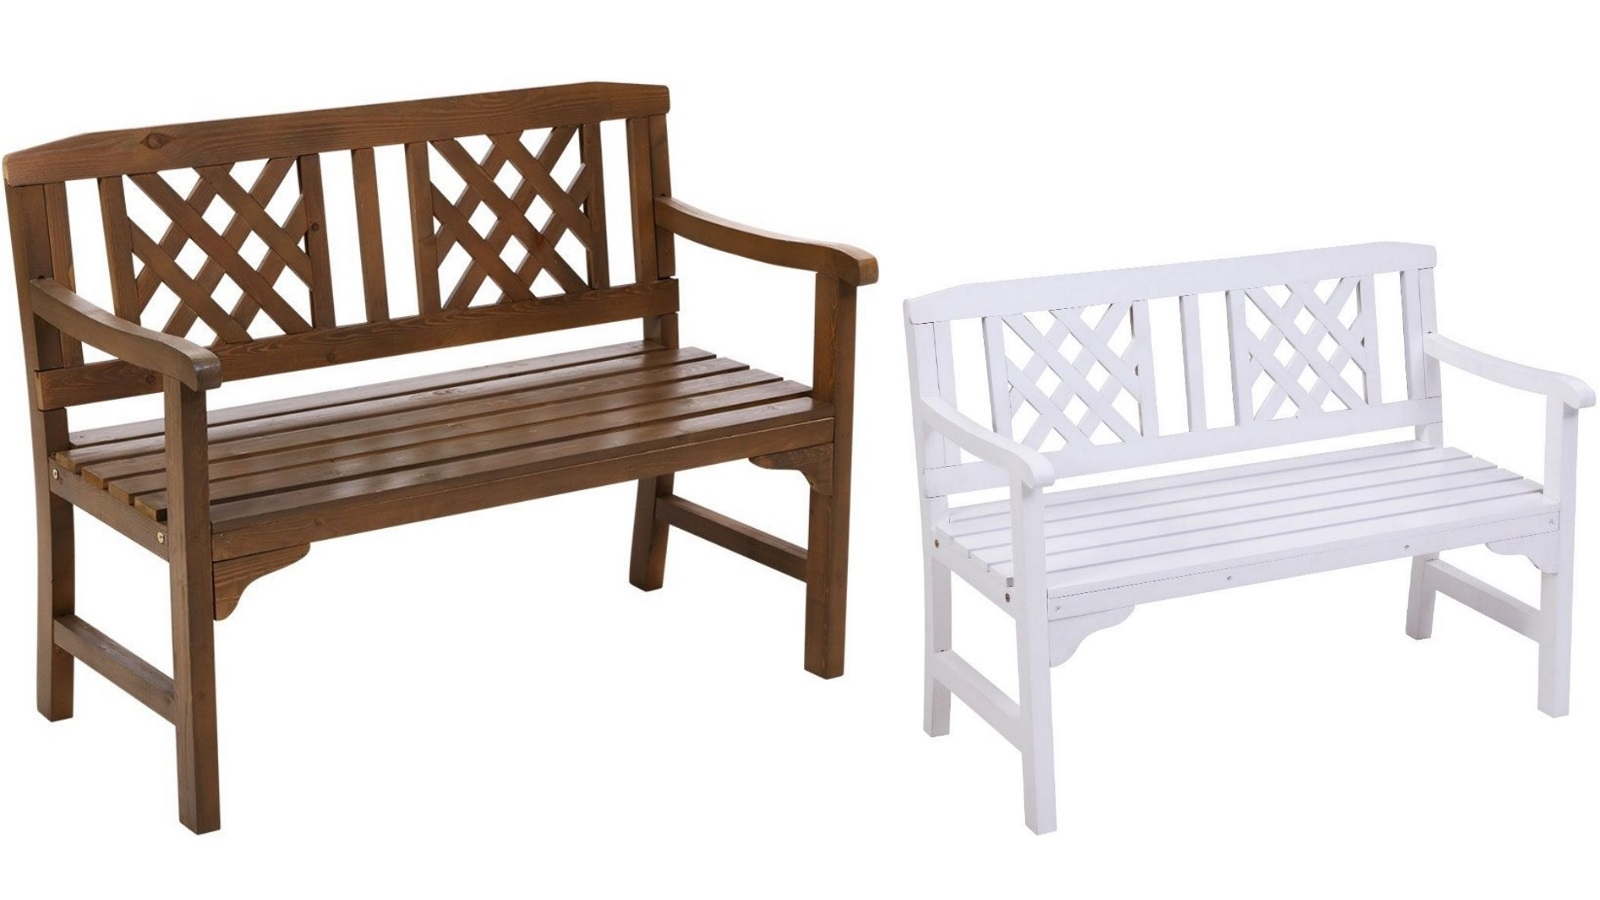 Gardeon 2 Seater Wooden Garden Bench Seat In Manchester Wooden Garden Benches (View 19 of 25)